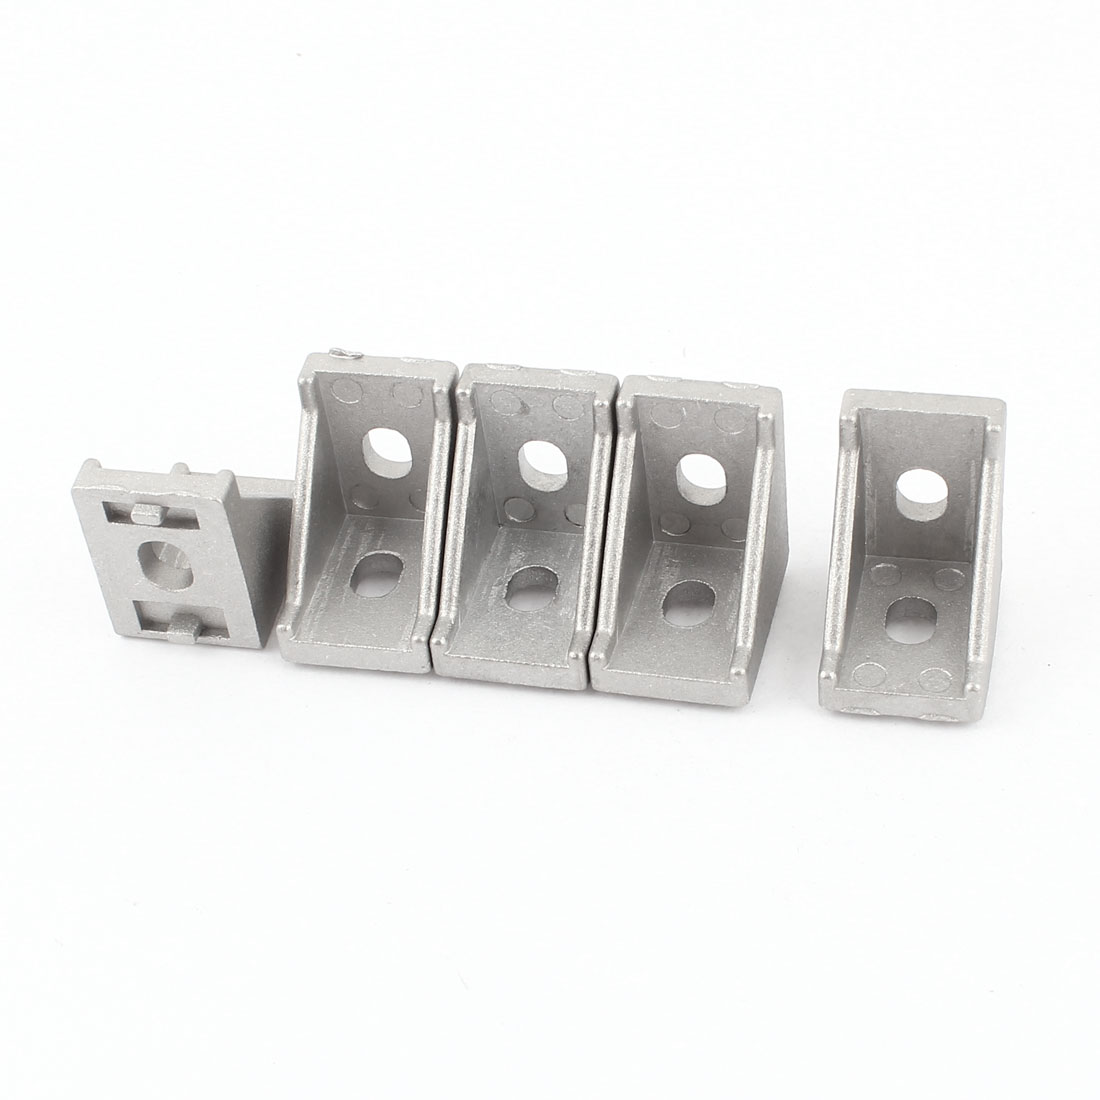 5 Pcs Silver Tone Metal 90 Degree Door Angle Bracket 20mm x 20mm